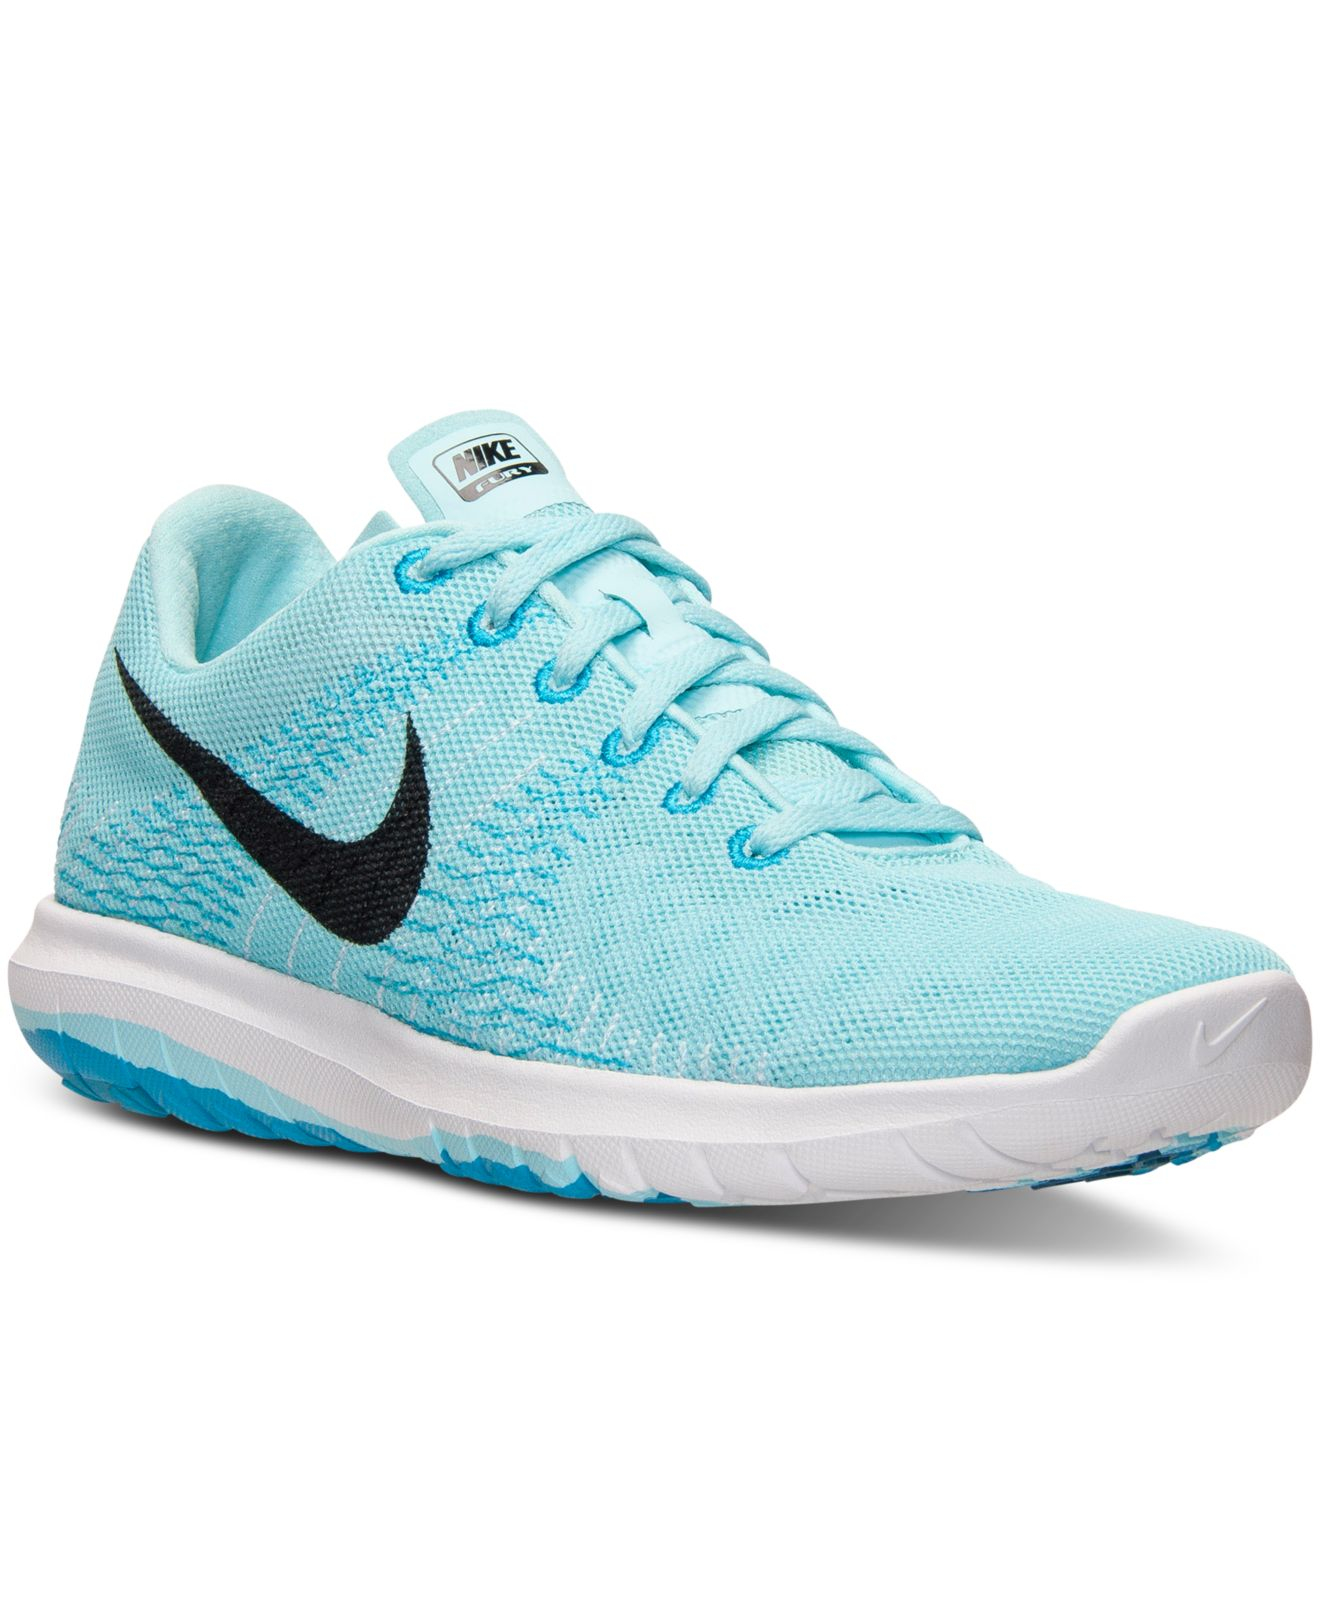 4a080d8aeb32 ... hot lyst nike womens flex fury running sneakers from finish line in  blue 24521 f9bdc